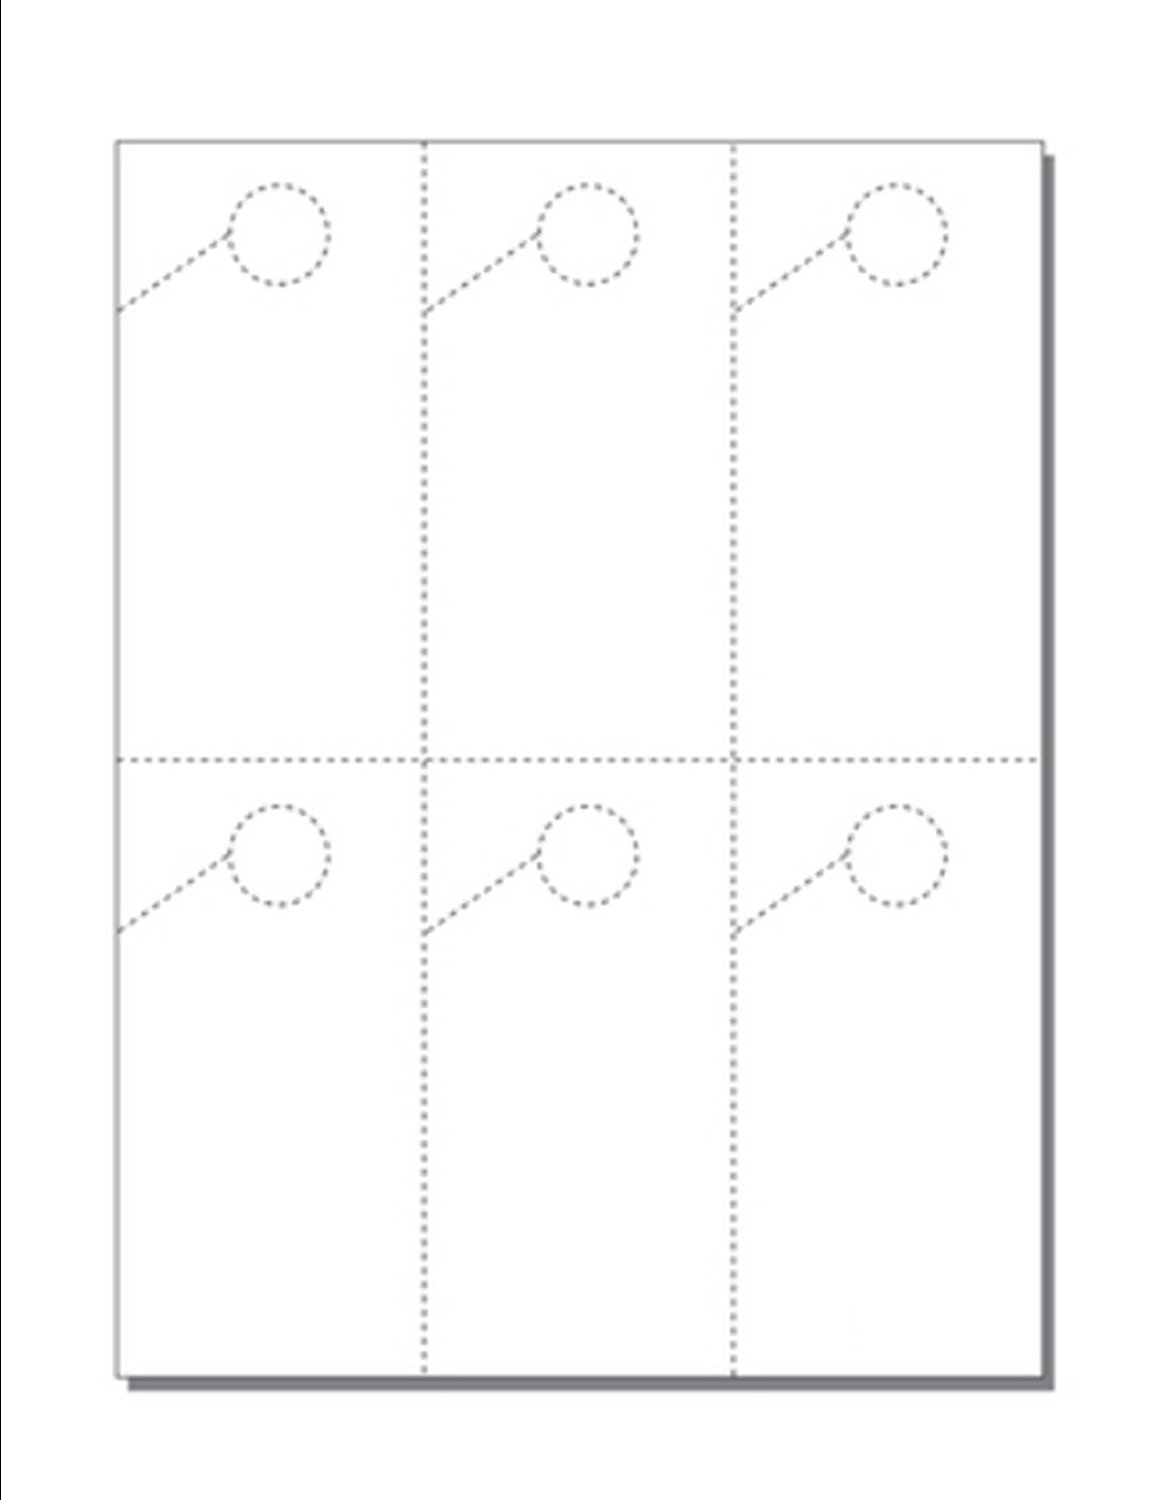 """Print-Ready Hang Tags with Hole, 6-UP (2-3/4"""" x 5-1/2""""), Perfed on 8-1/2"""" x 11"""" White 67lb Vellum Paper - 250 Sheets / 1500 Hang Tags"""